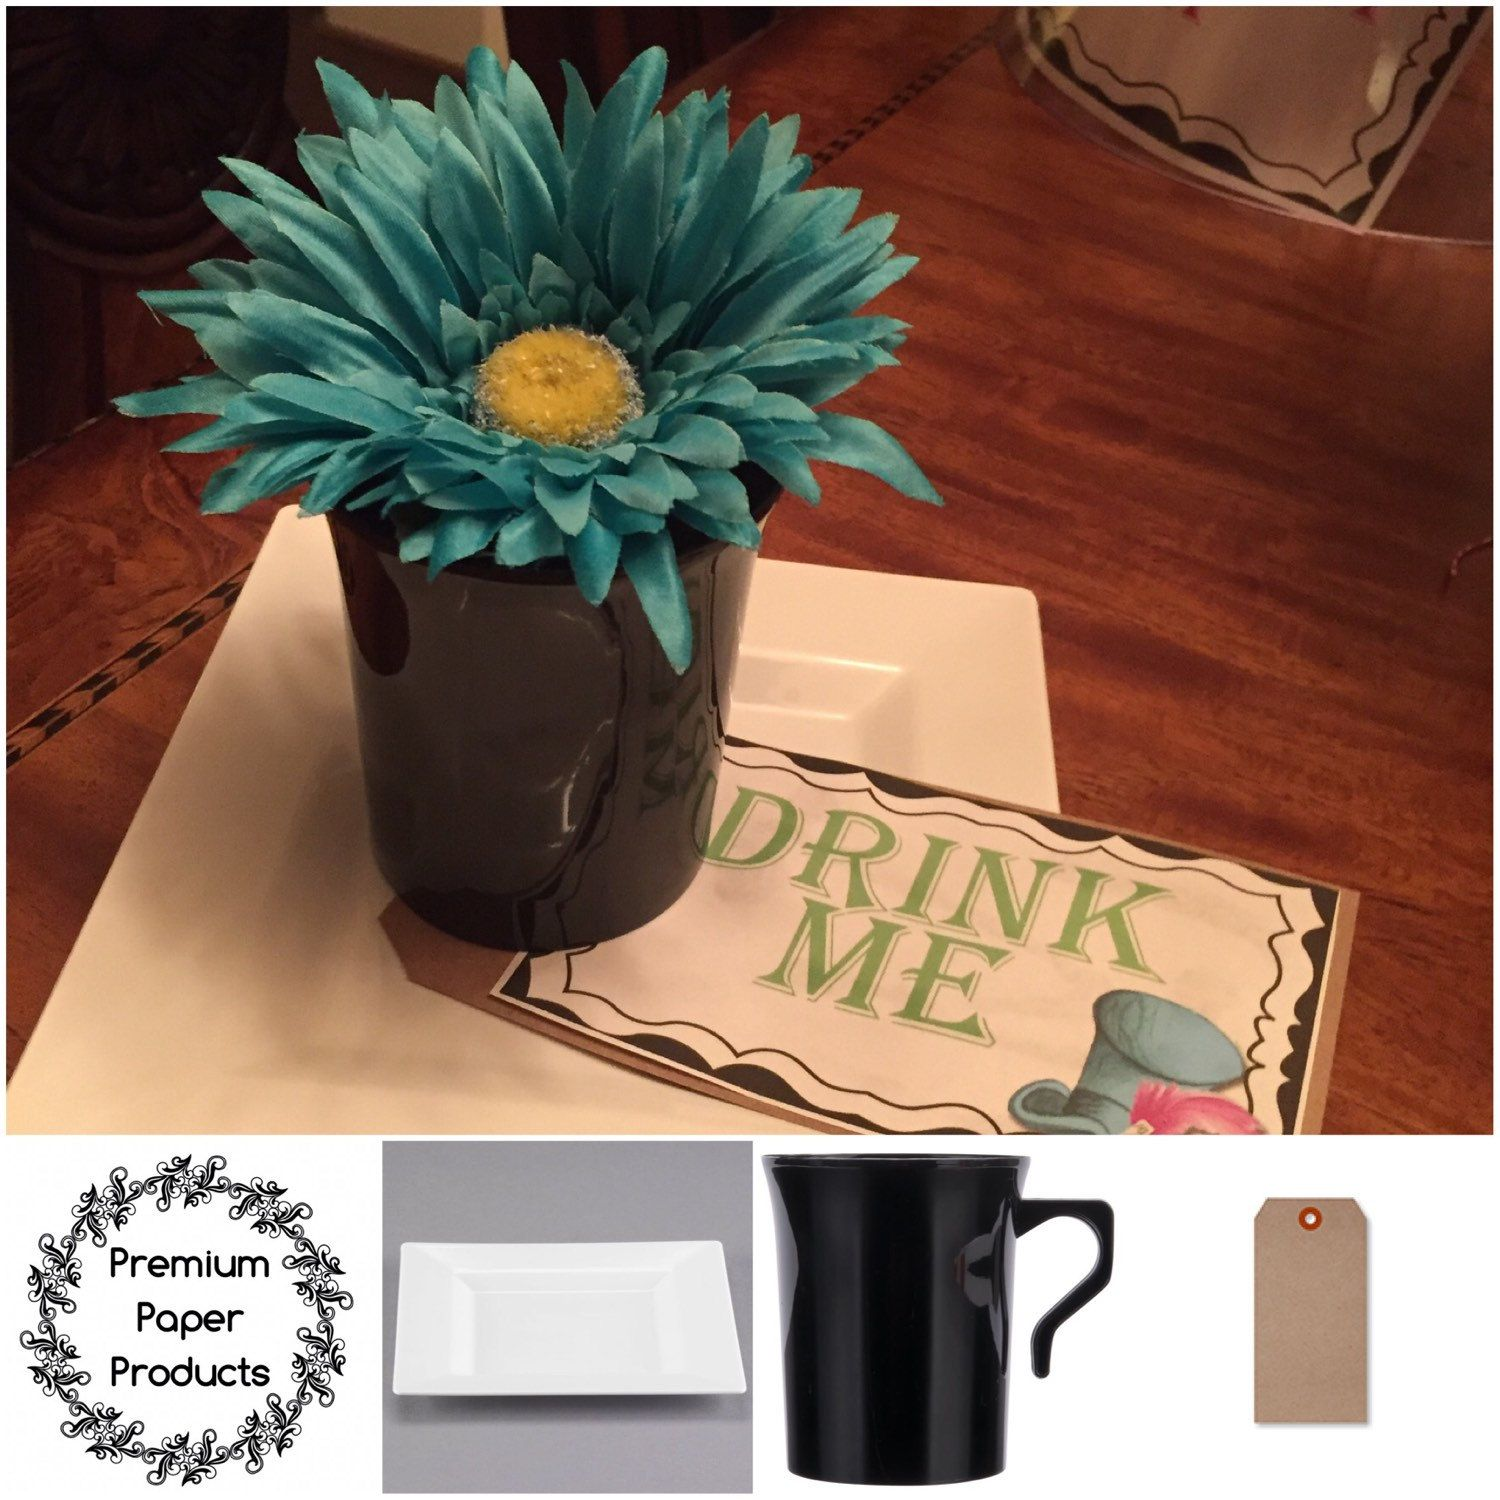 Look at this creative table decor! One of my customer used all this to create this piece for a party! More ideas to come visit and shop now! #party #creative #plasticplates #krafttags #create #diy #crafts #decor #decorations #premiumpaperproducts